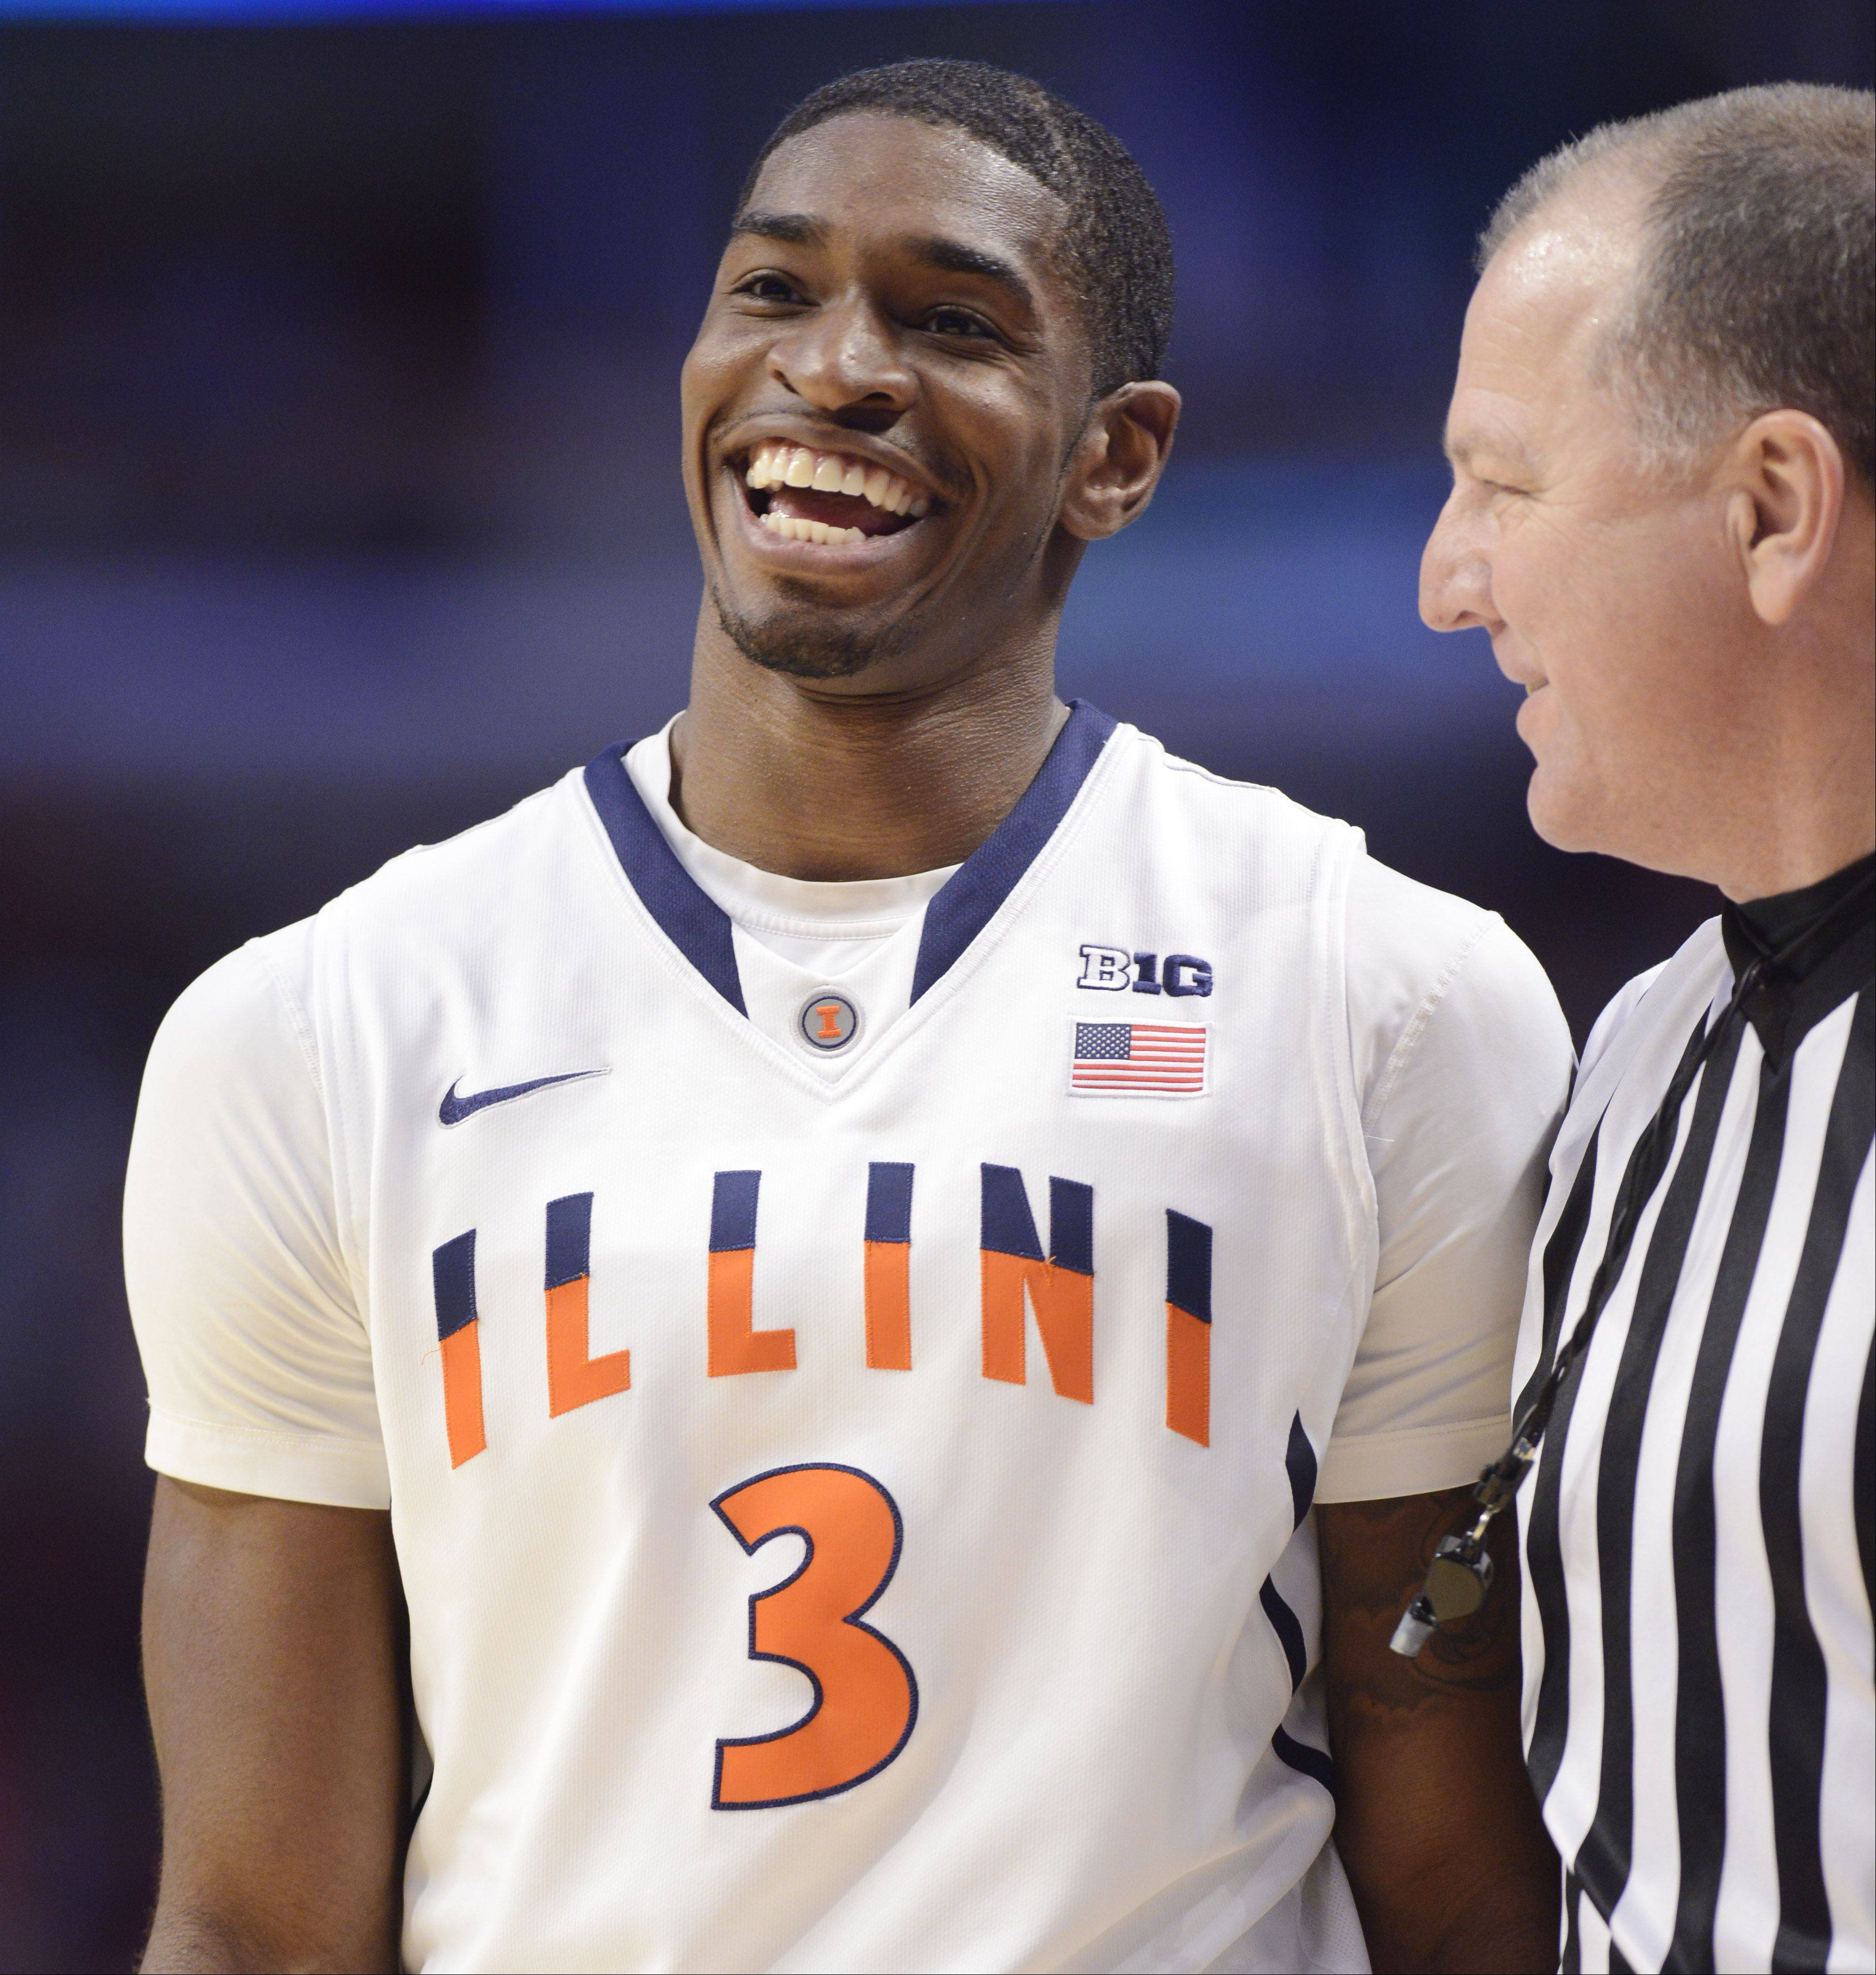 Despite Brandon Paul's presence, Mike Spellman isn't sure the Illini will advance very far in the NCAA tourney.